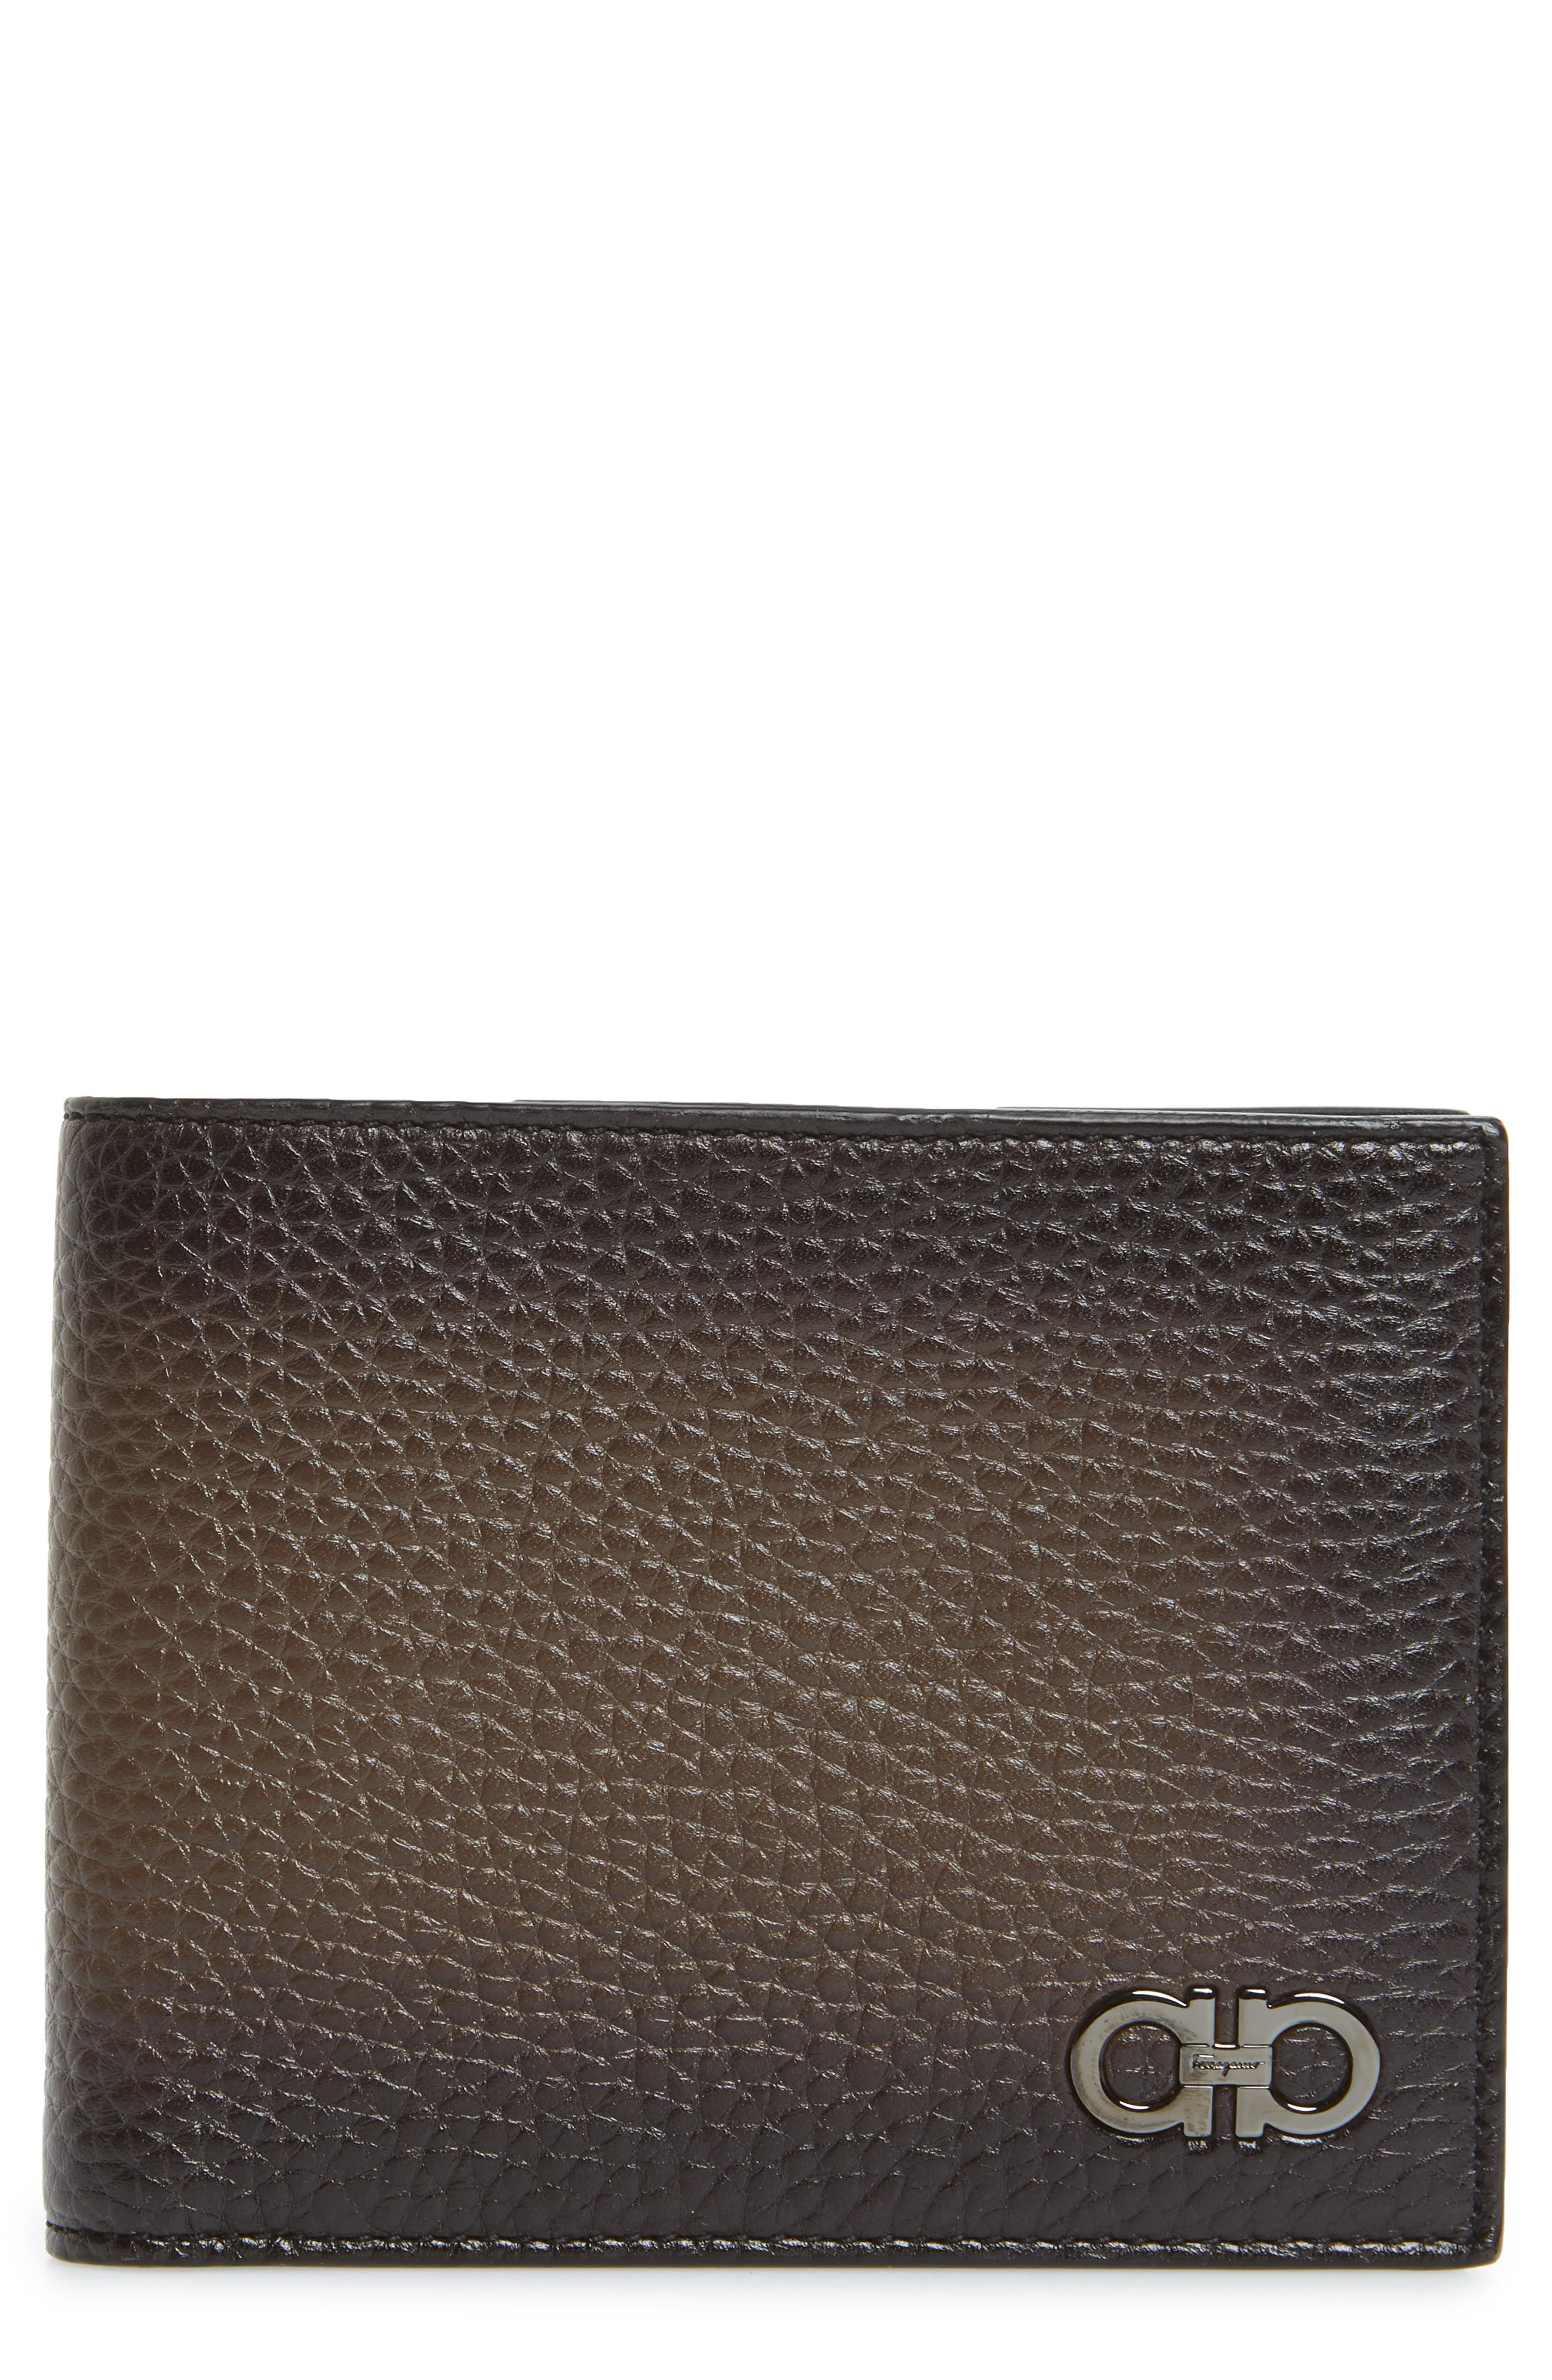 Glow Leather Wallet,                             Main thumbnail 1, color,